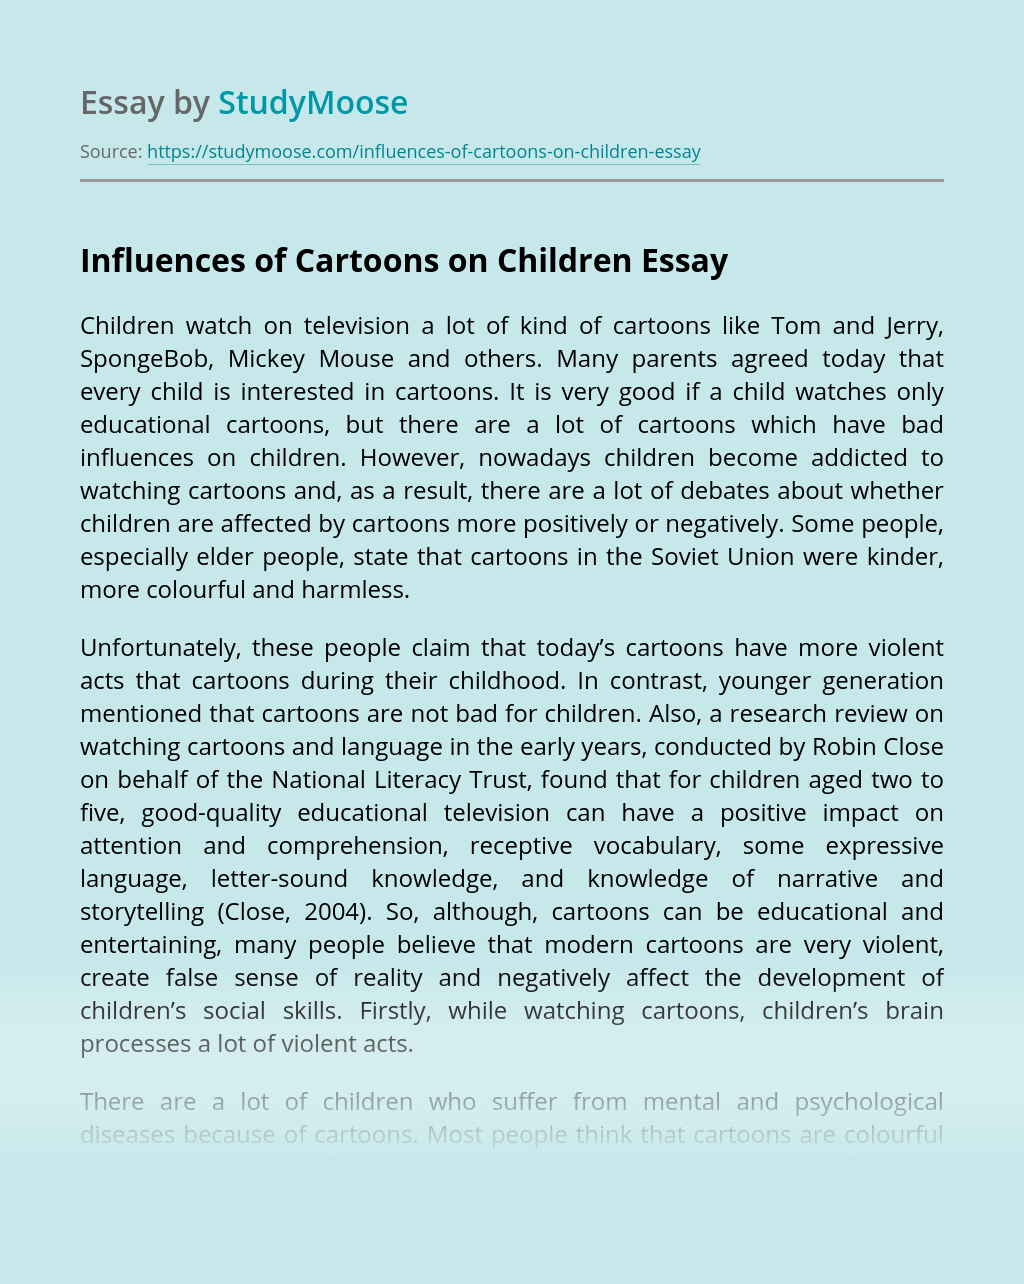 Influences of Cartoons on Children